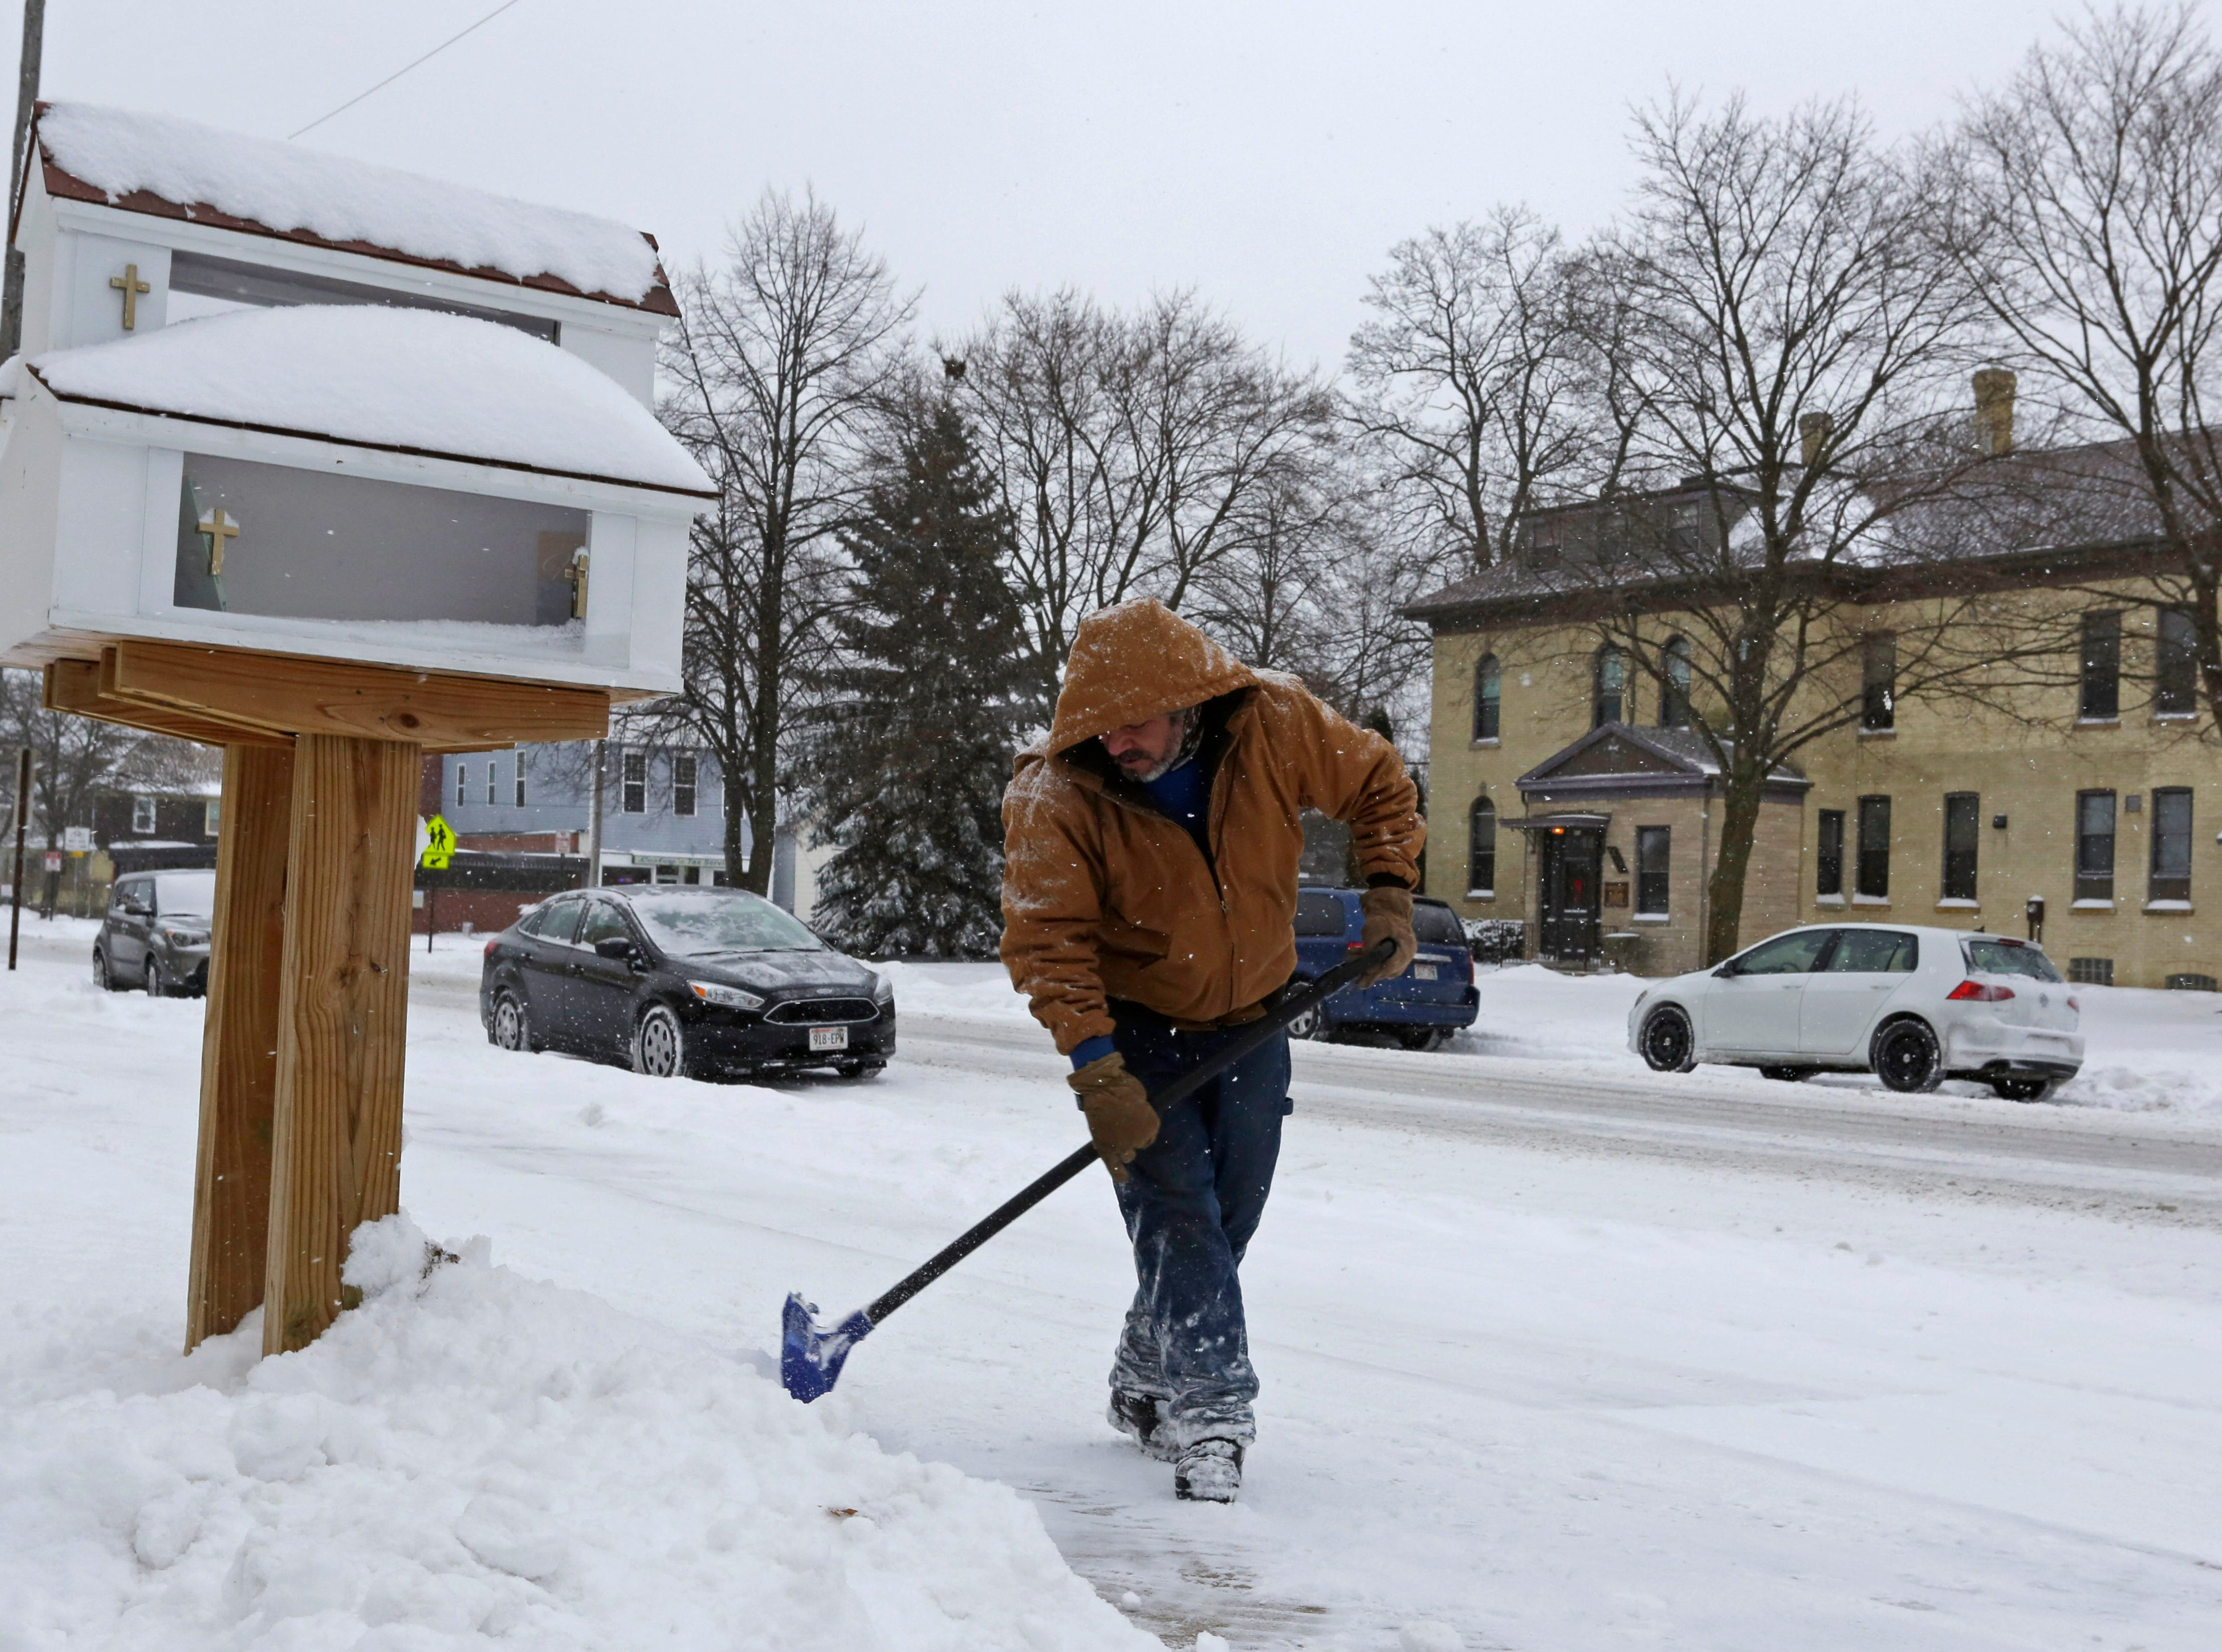 Pedro Astralop shoves snow near Holy Name, Saturday, January 19, 2019, in Sheboygan, Wis.